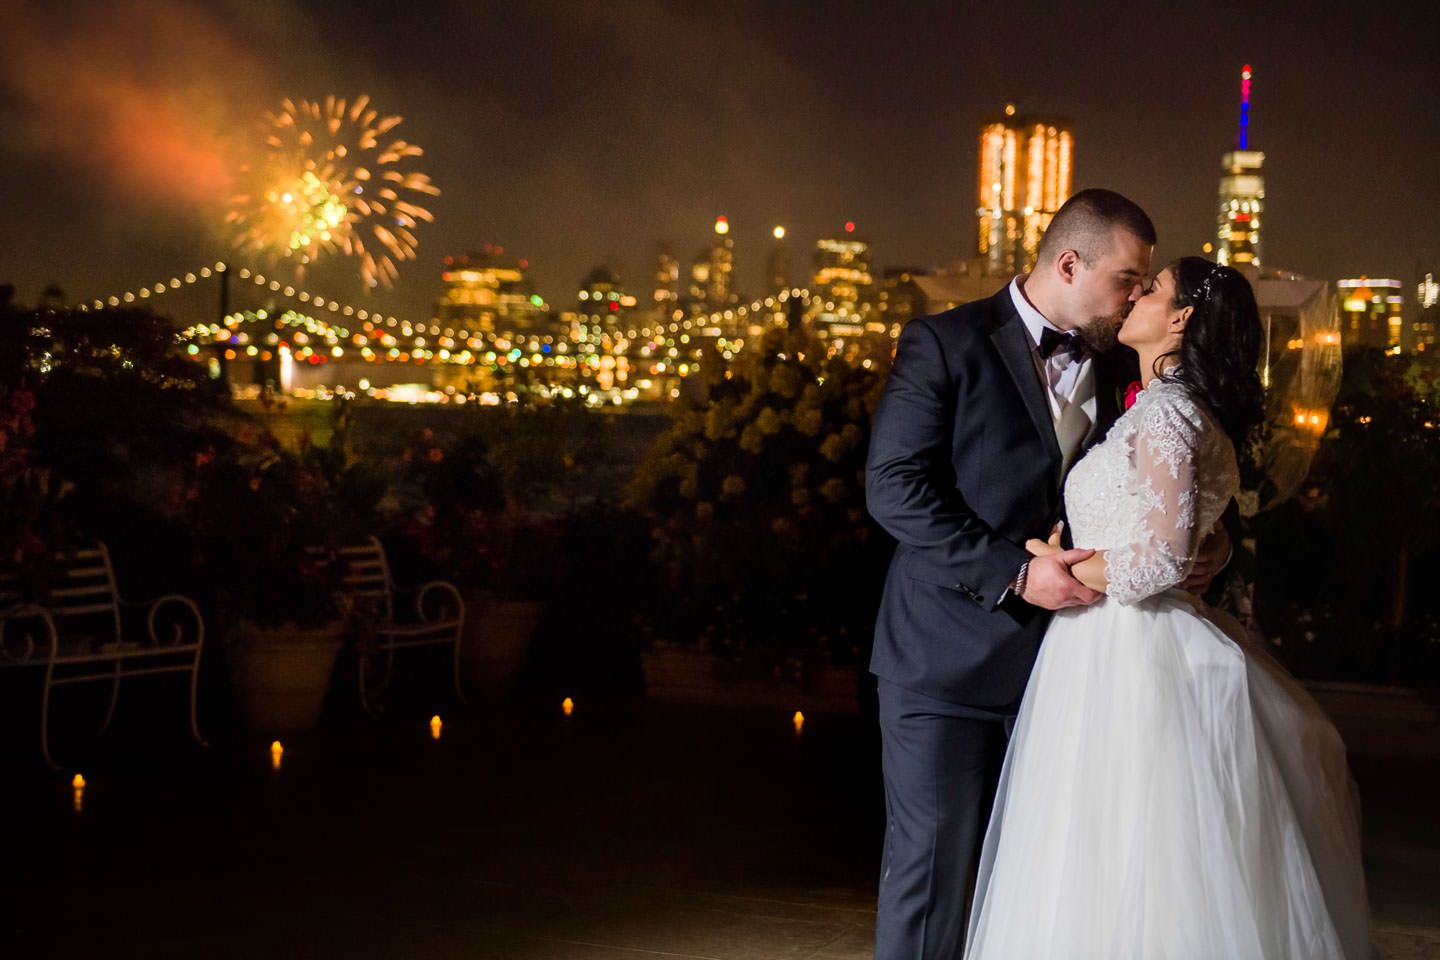 wedding couple kissing at night with NYC skyline and fireworks in the background taken at wedding at Giando on the Water restaurant in Brooklyn